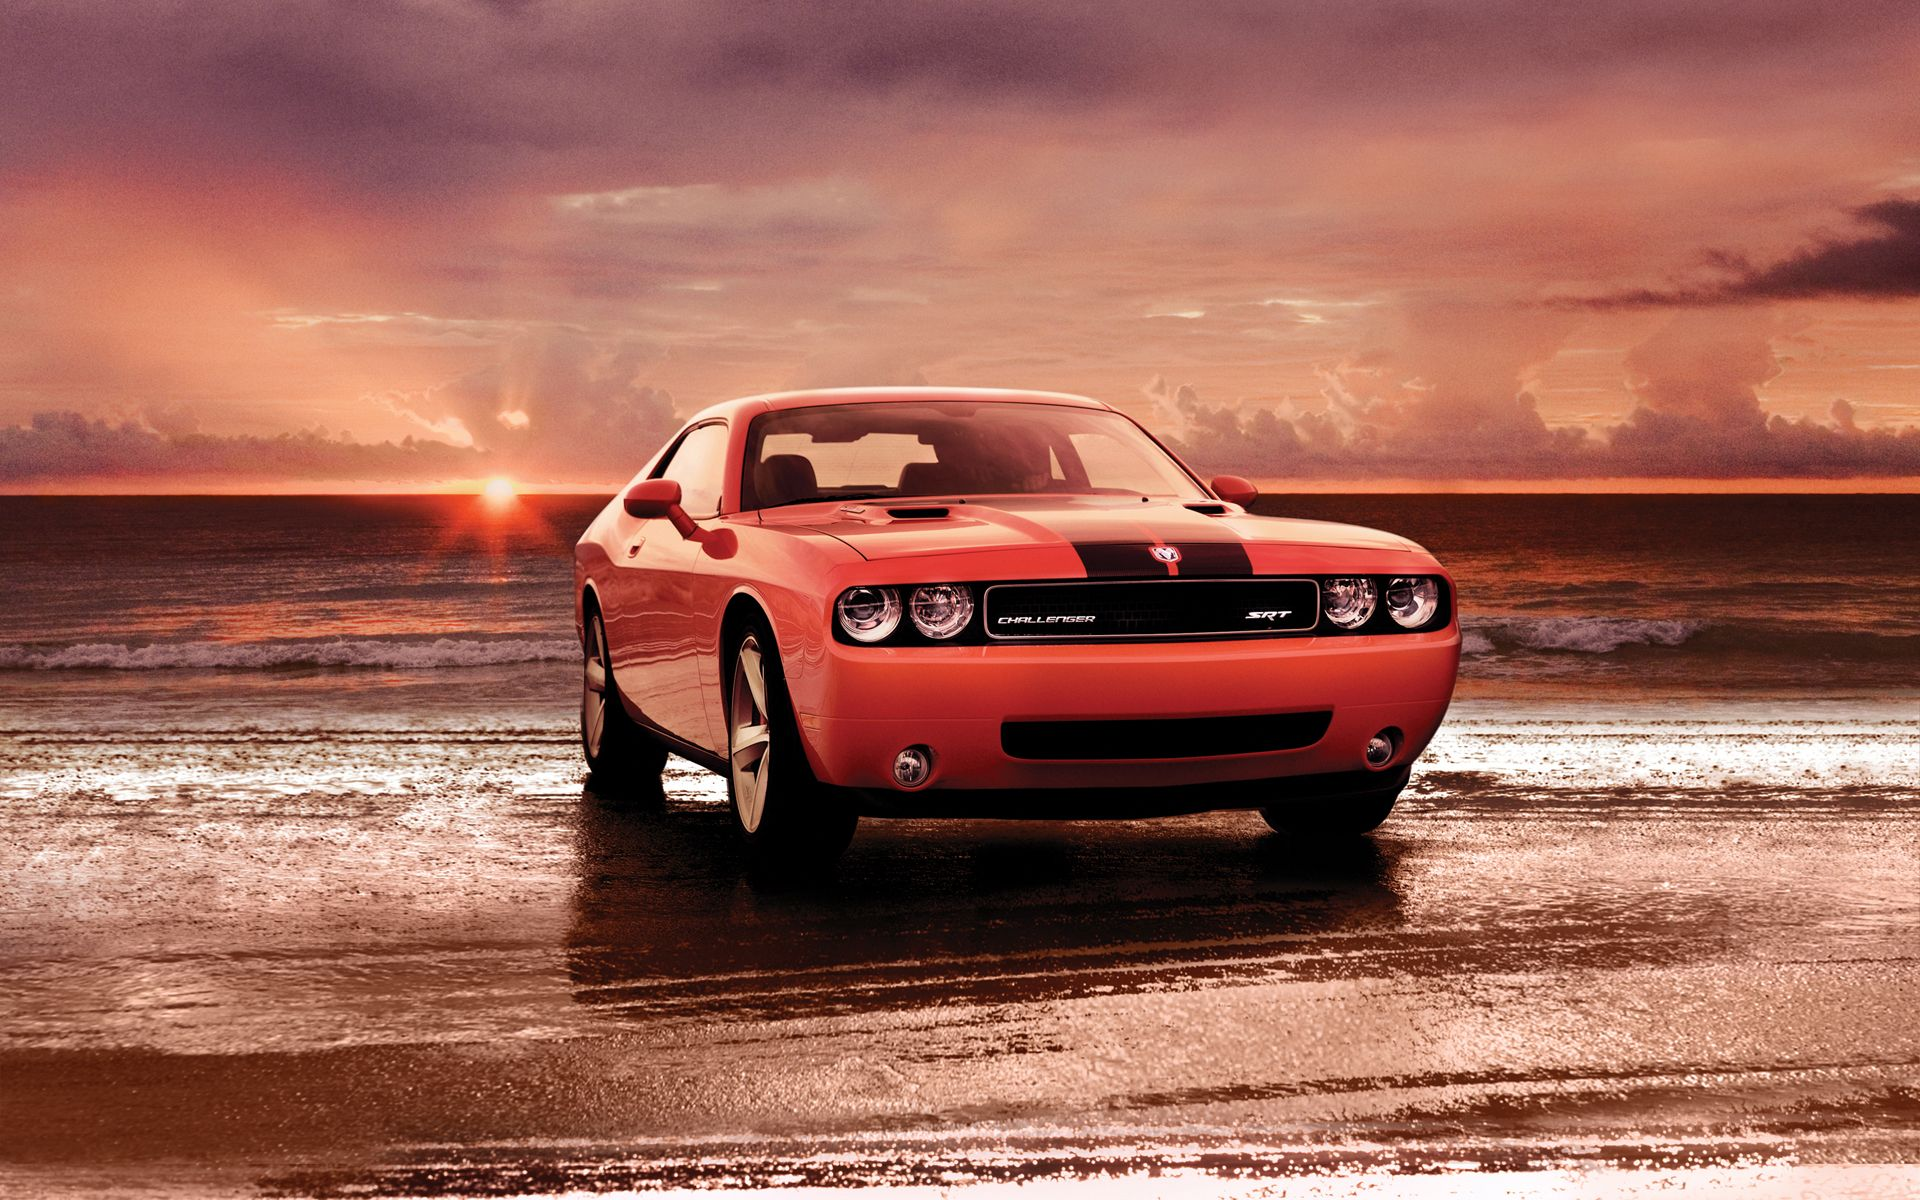 2008 Dodge Challenger SRT8 3 Wallpapers HD Wallpapers 1920x1200